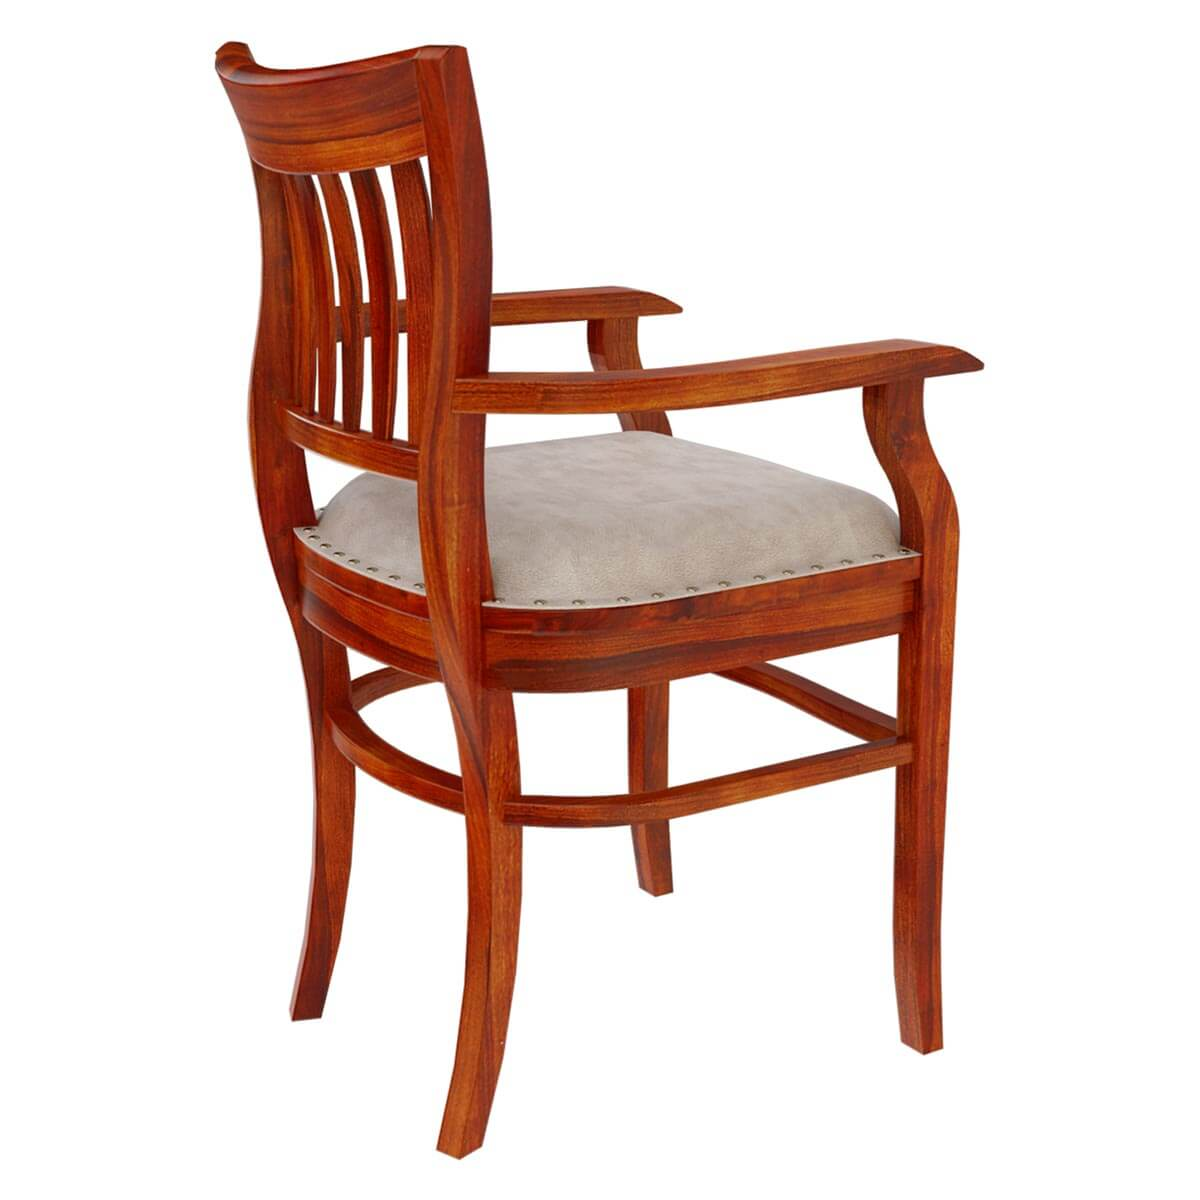 Dining Chairs Solid Wood Arm Chair Leather Cushion Dining Furniture. Full resolution‎  snapshot, nominally Width 1200 Height 1200 pixels, snapshot with #B05117.